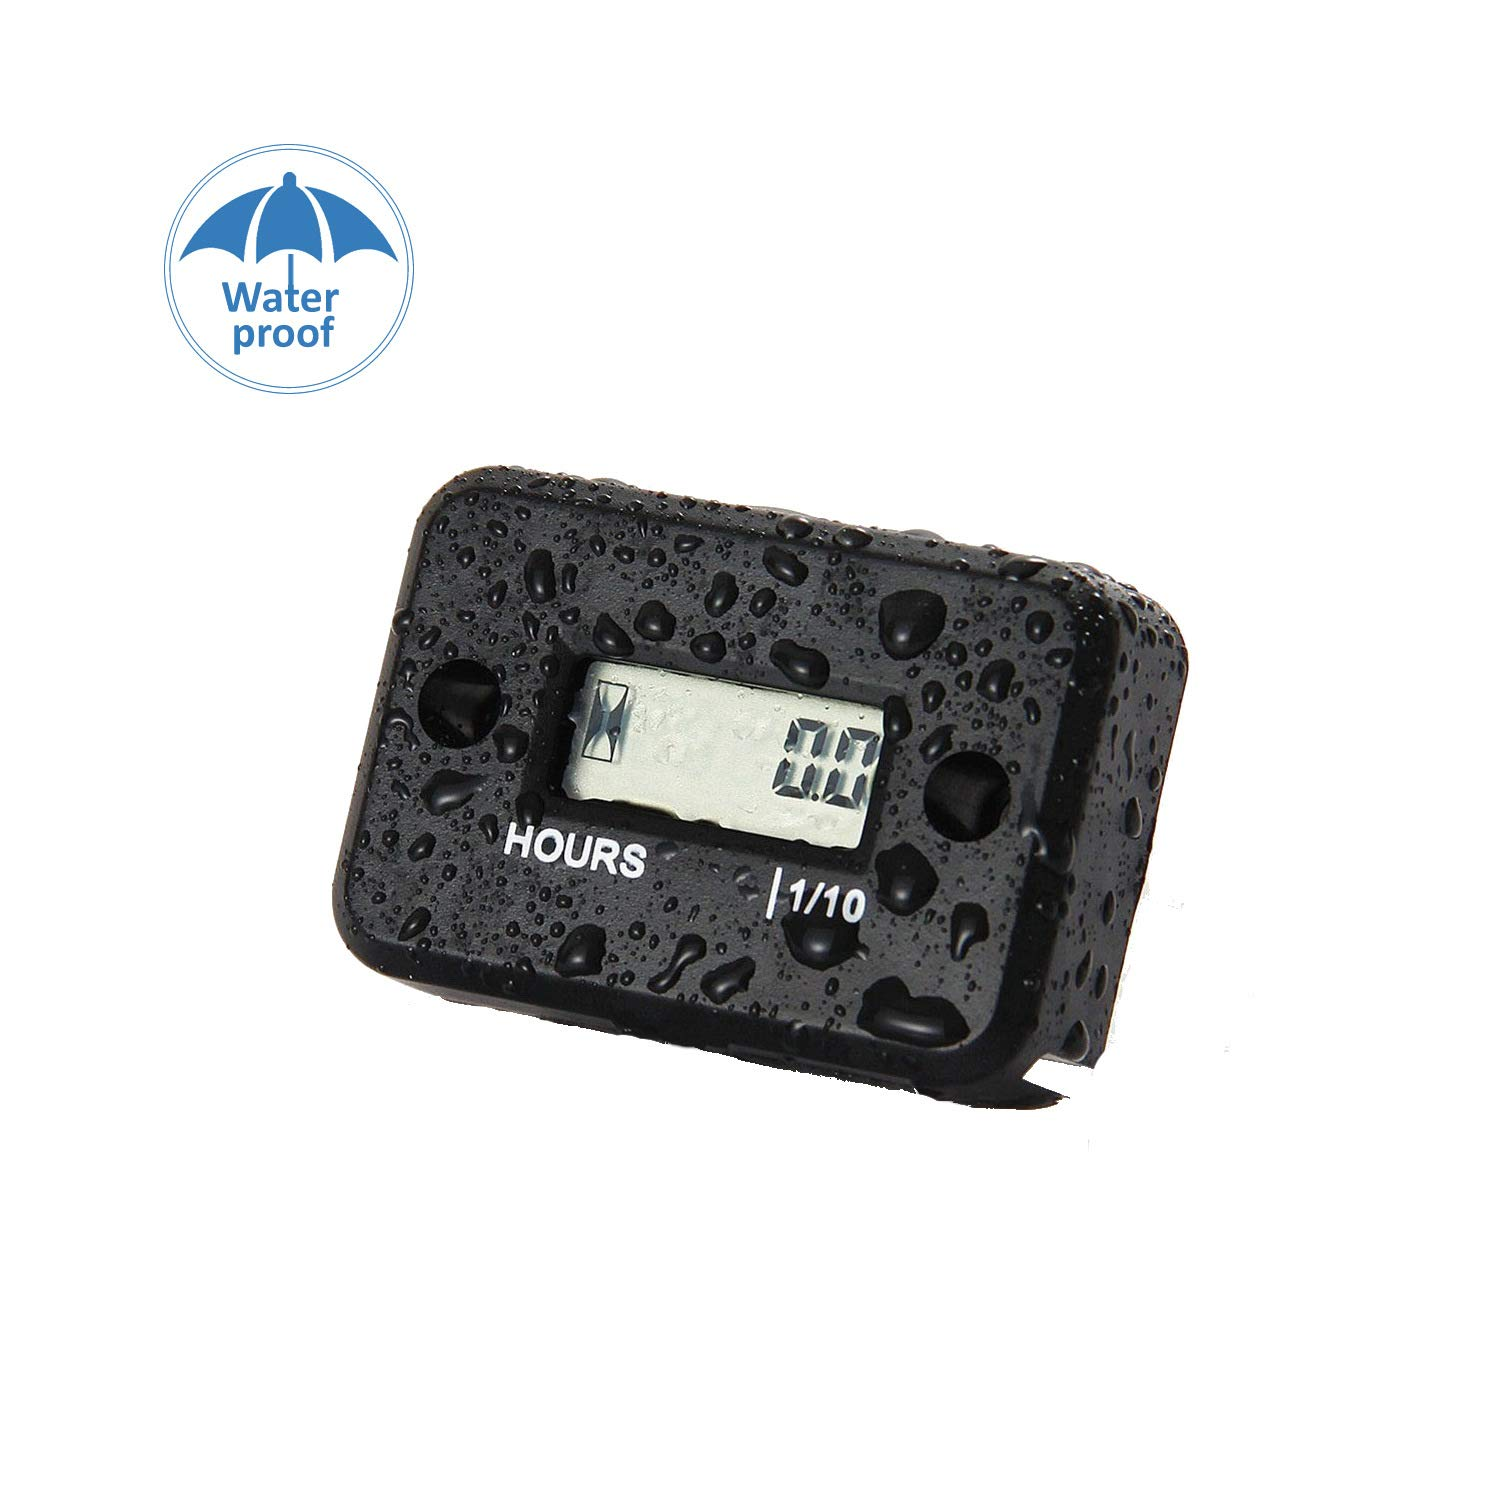 ETbotu Digital LCD Counter Hour Meter for Motorcycle Instruments ATV Snowmobile Marine Boat